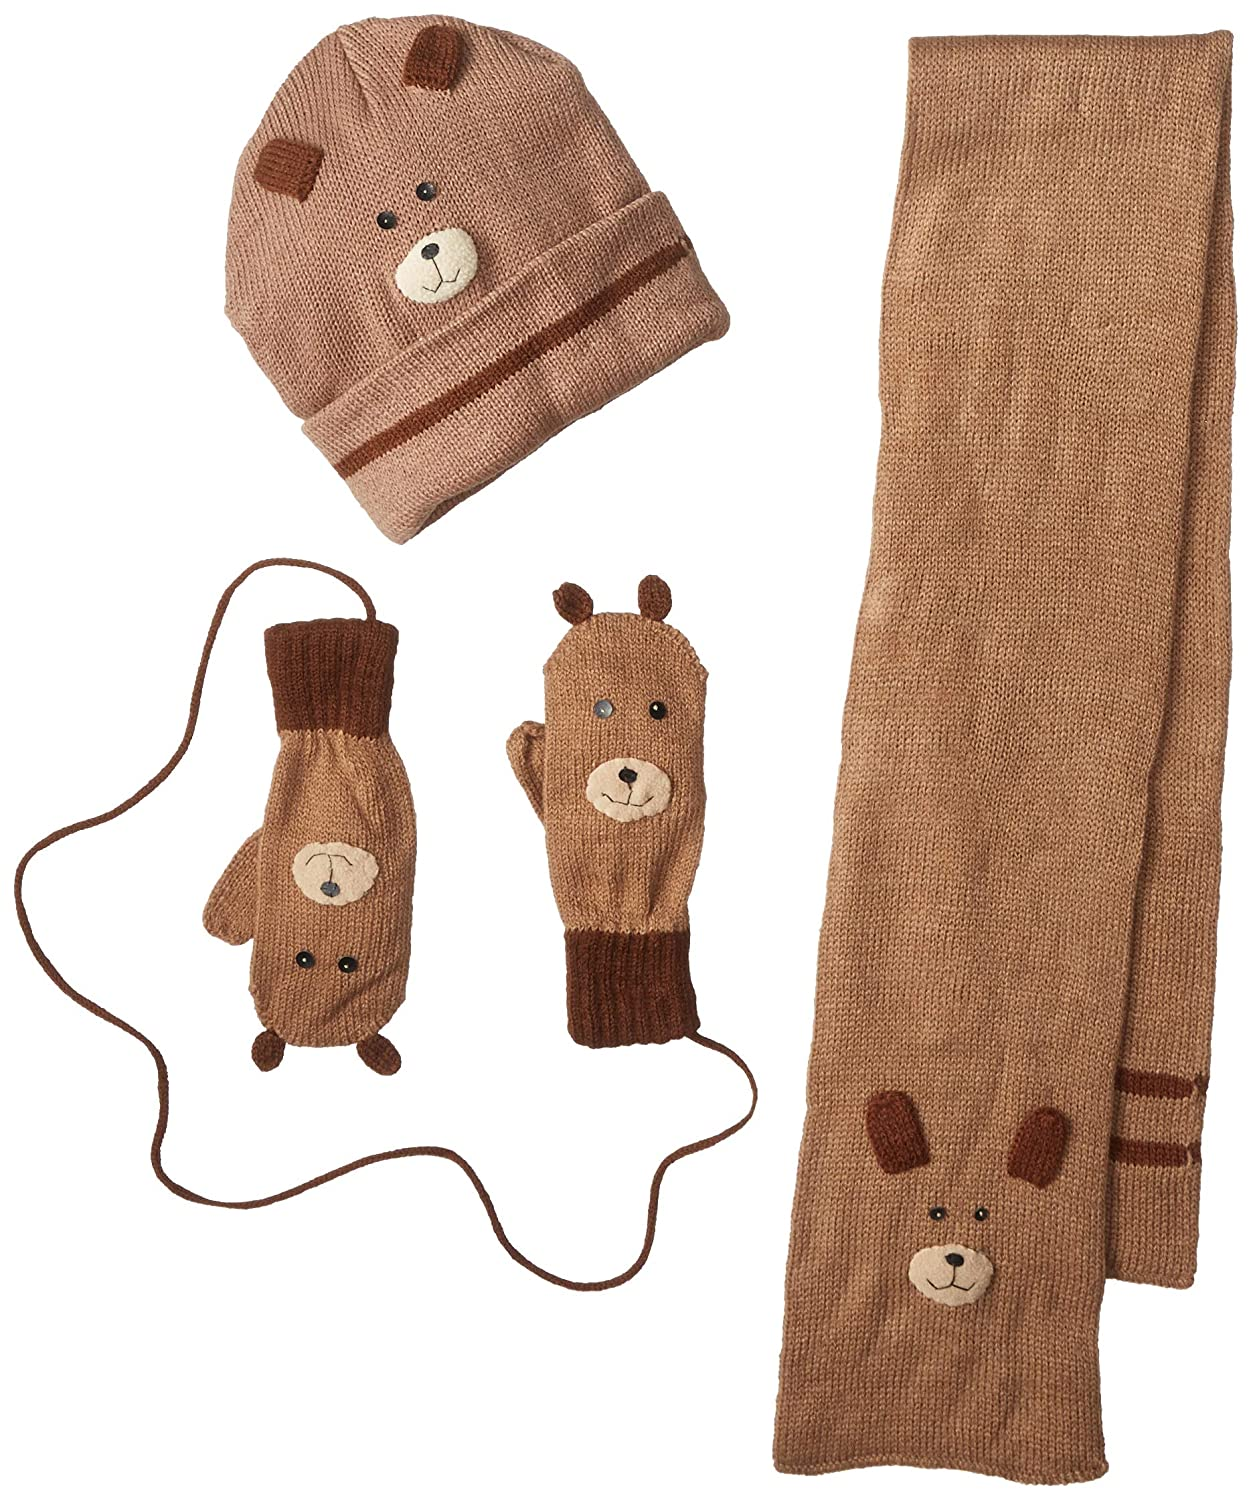 Kidorable Brown Bear Soft Acrylic Knit Hat//Scarf//Mitten Set w//Fun Face and Ears